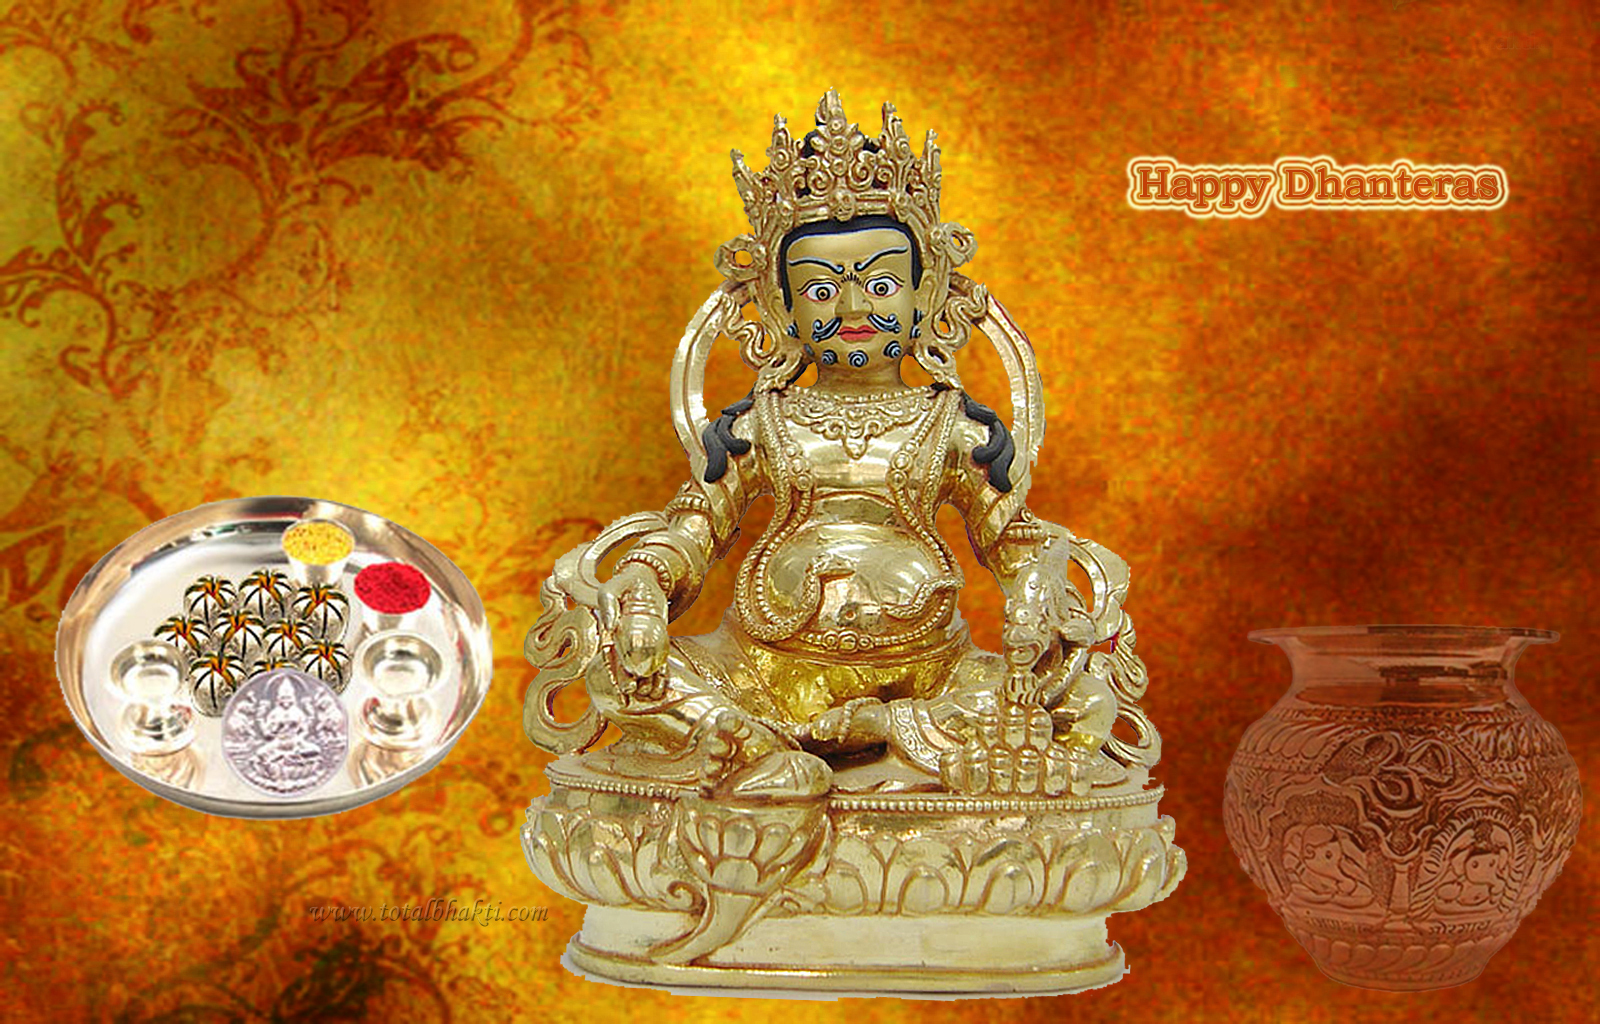 Happy Dhanteras Images Pictures Hd Wallpapers Whatsapp DP 2016 1600x1024